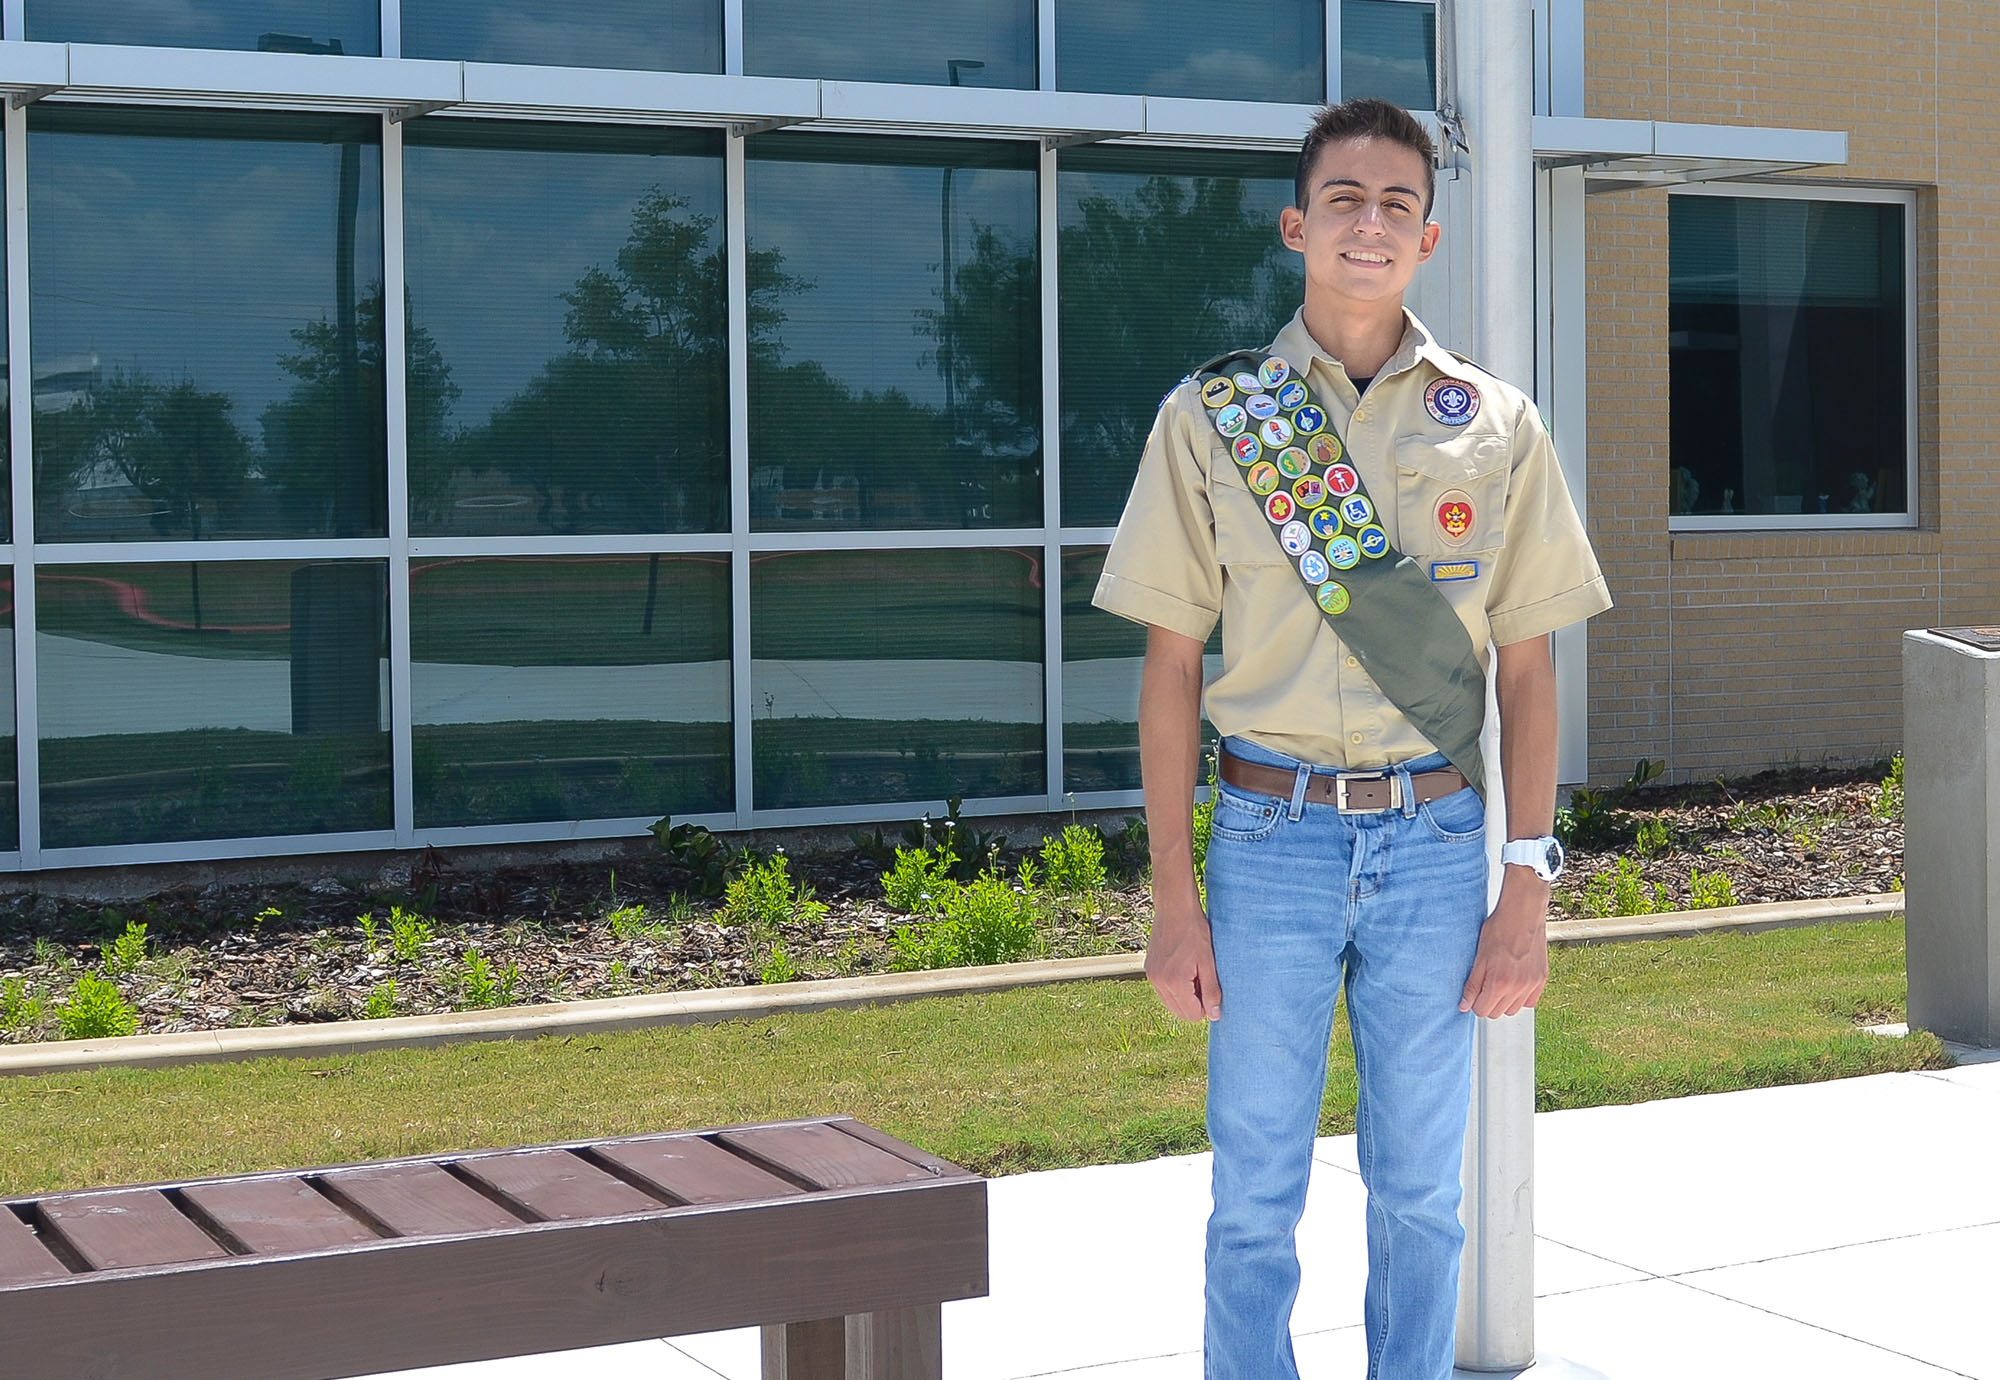 Eagle Scouts in the making: Brothers wrap up service projects at HHS and Cano